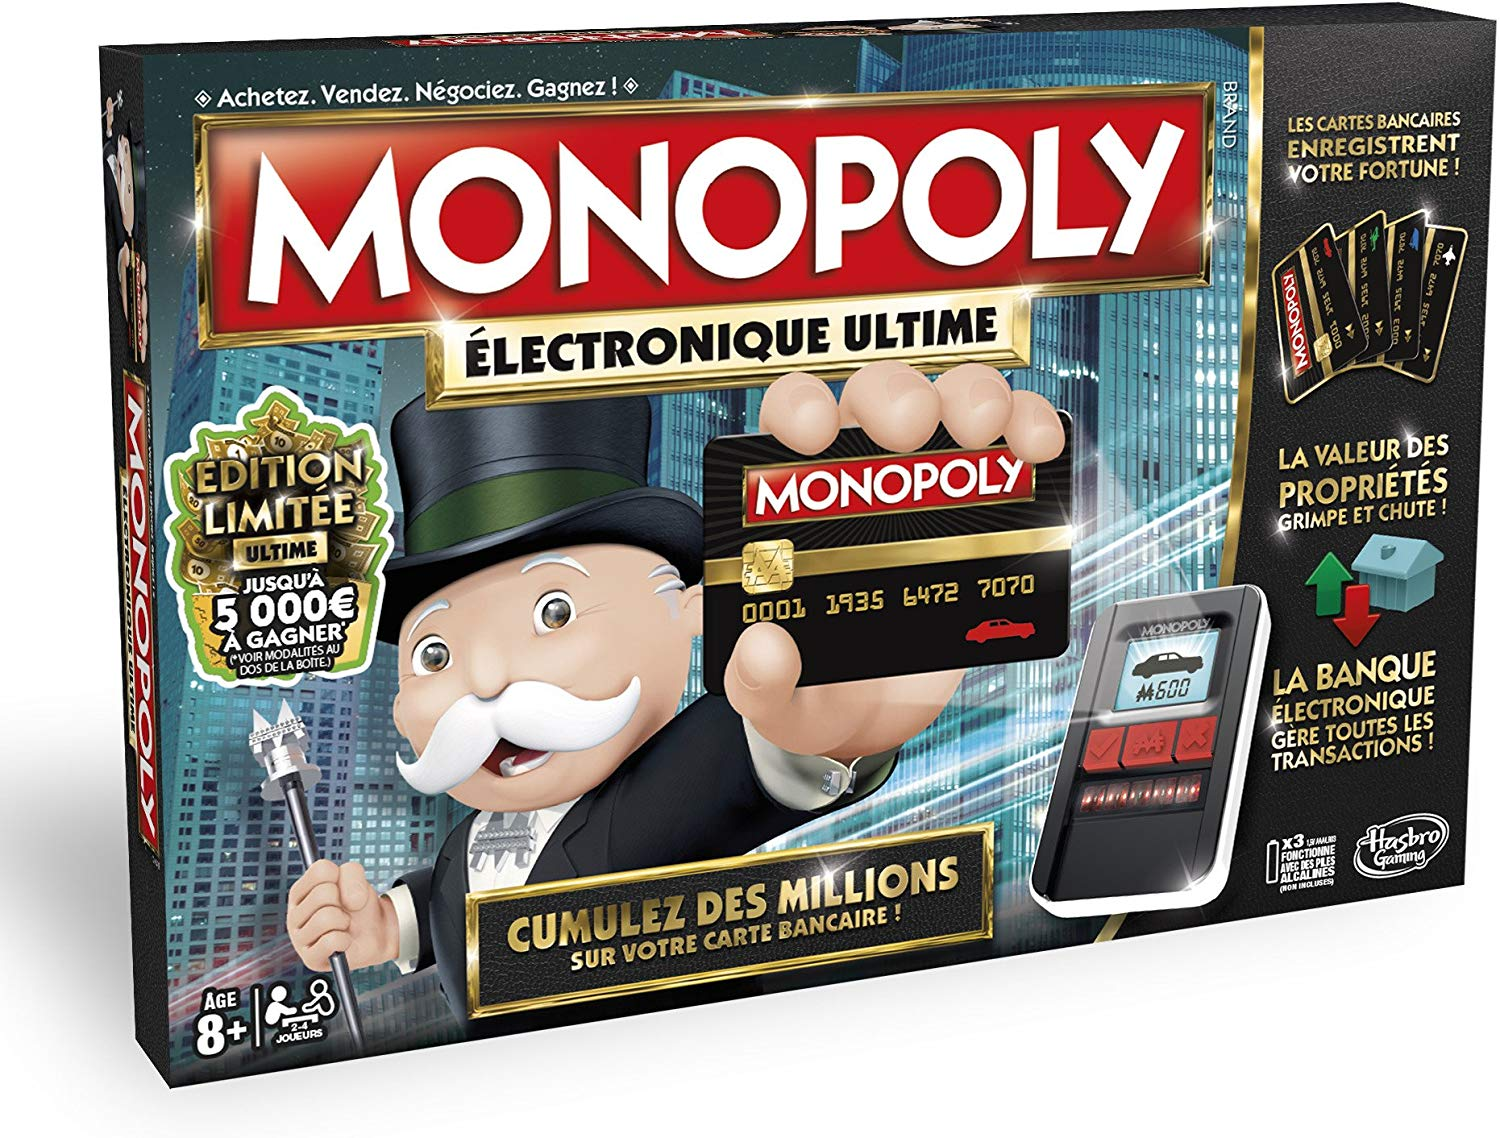 Monopoly Electronique Ultime / Ultimate Banking